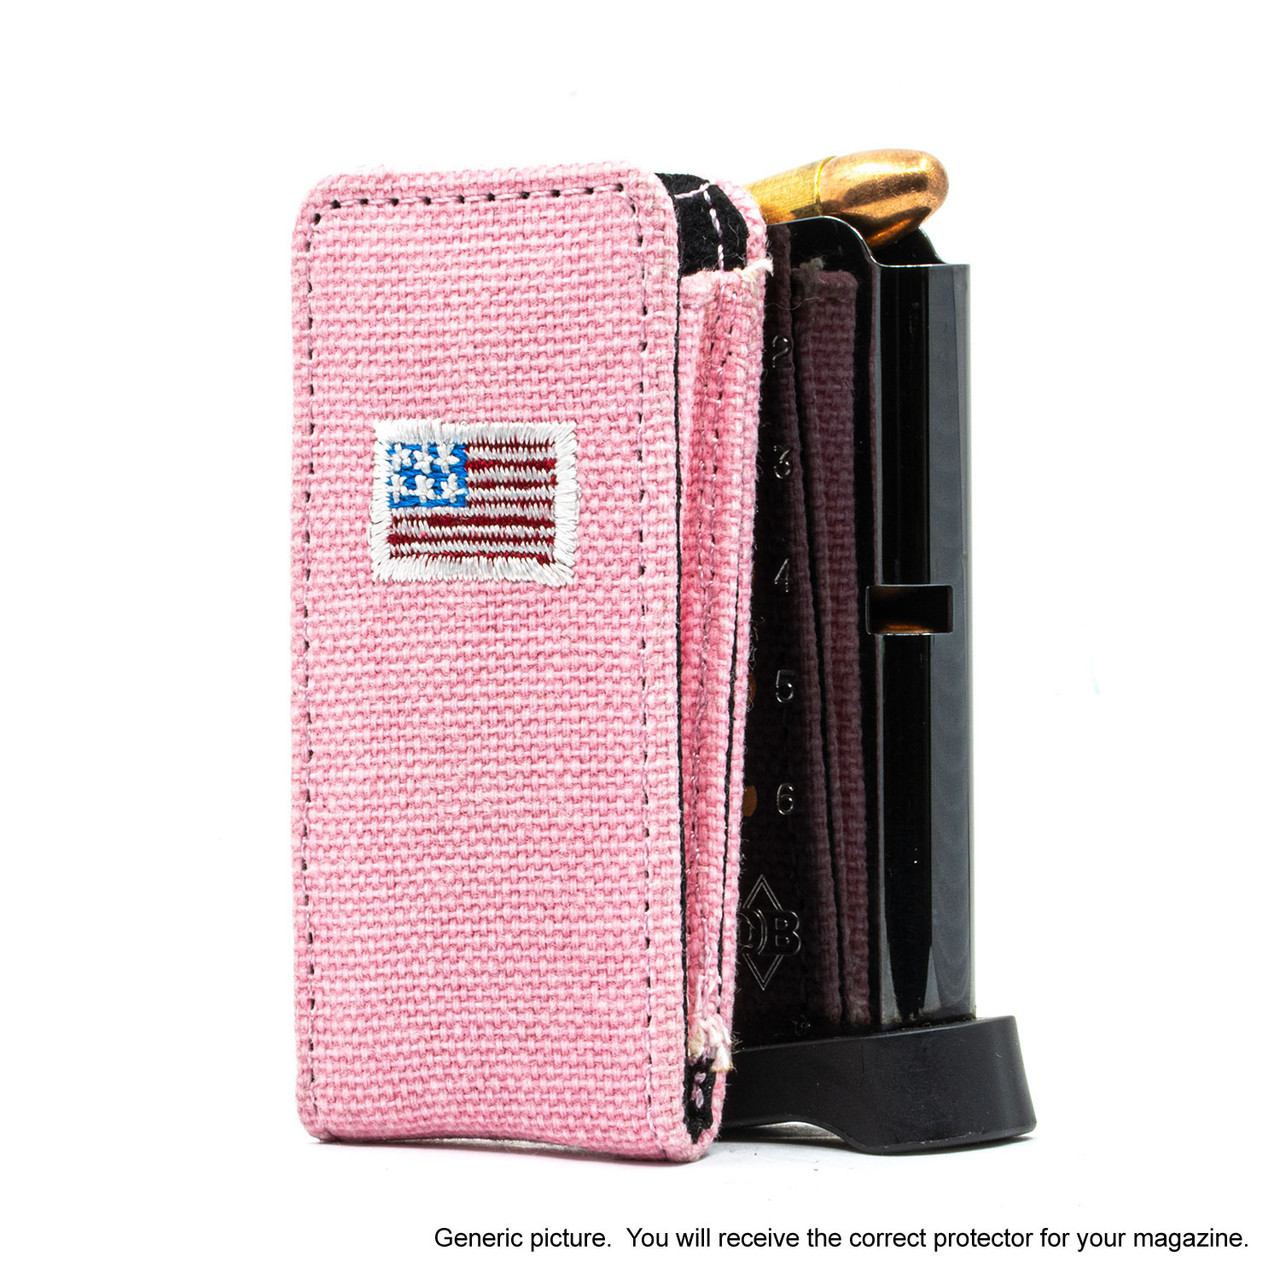 CZ 75D Compact Pink Canvas Flag Magazine Pocket Protector